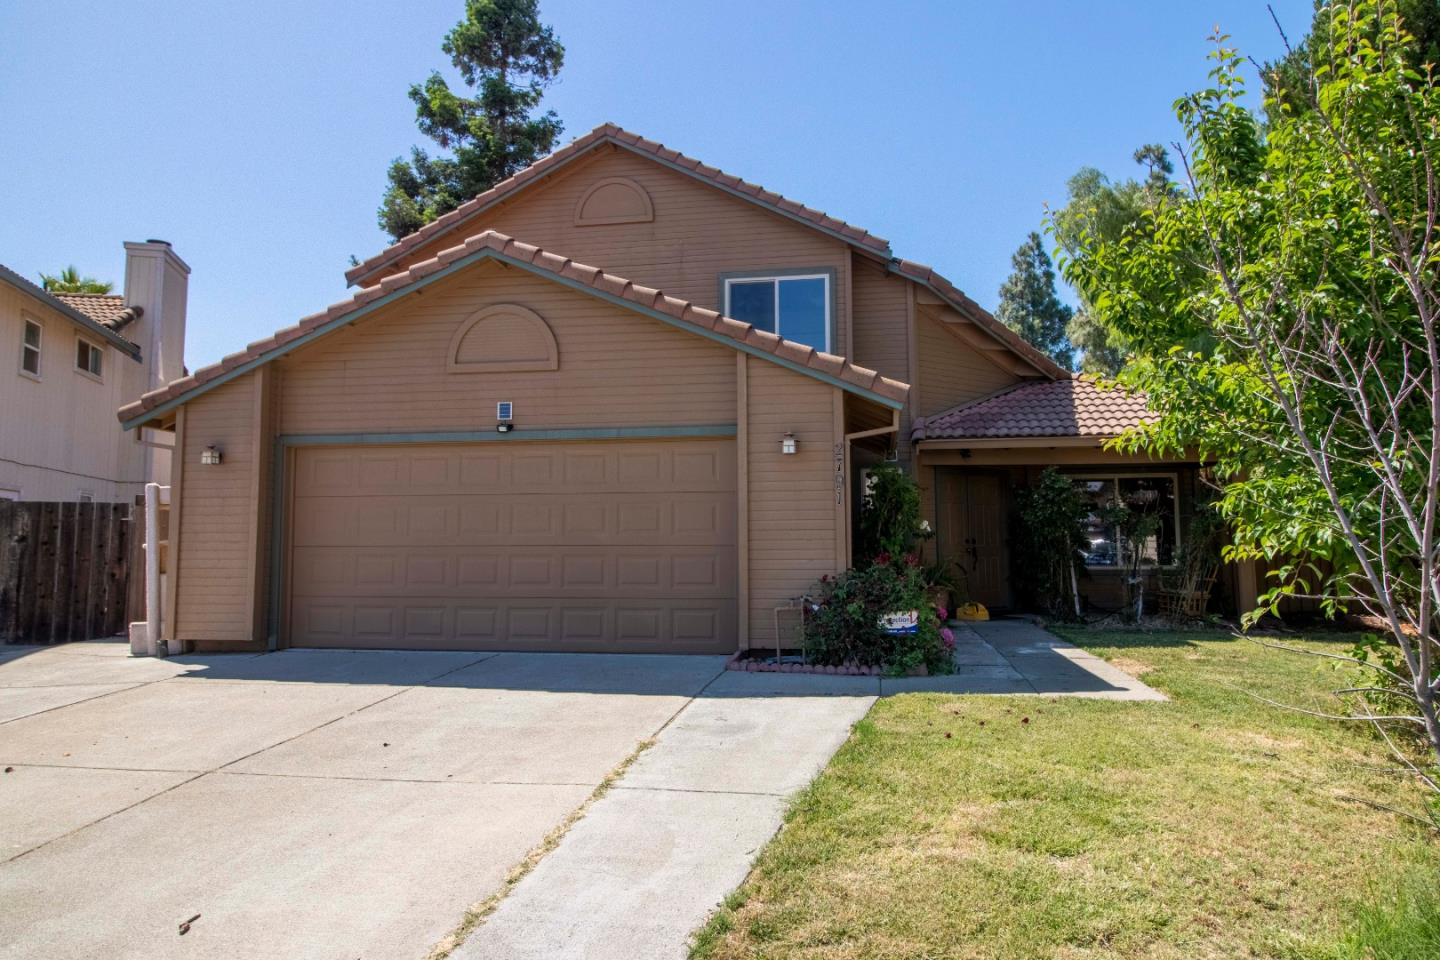 2791 Canal Court Fairfield, CA 94533